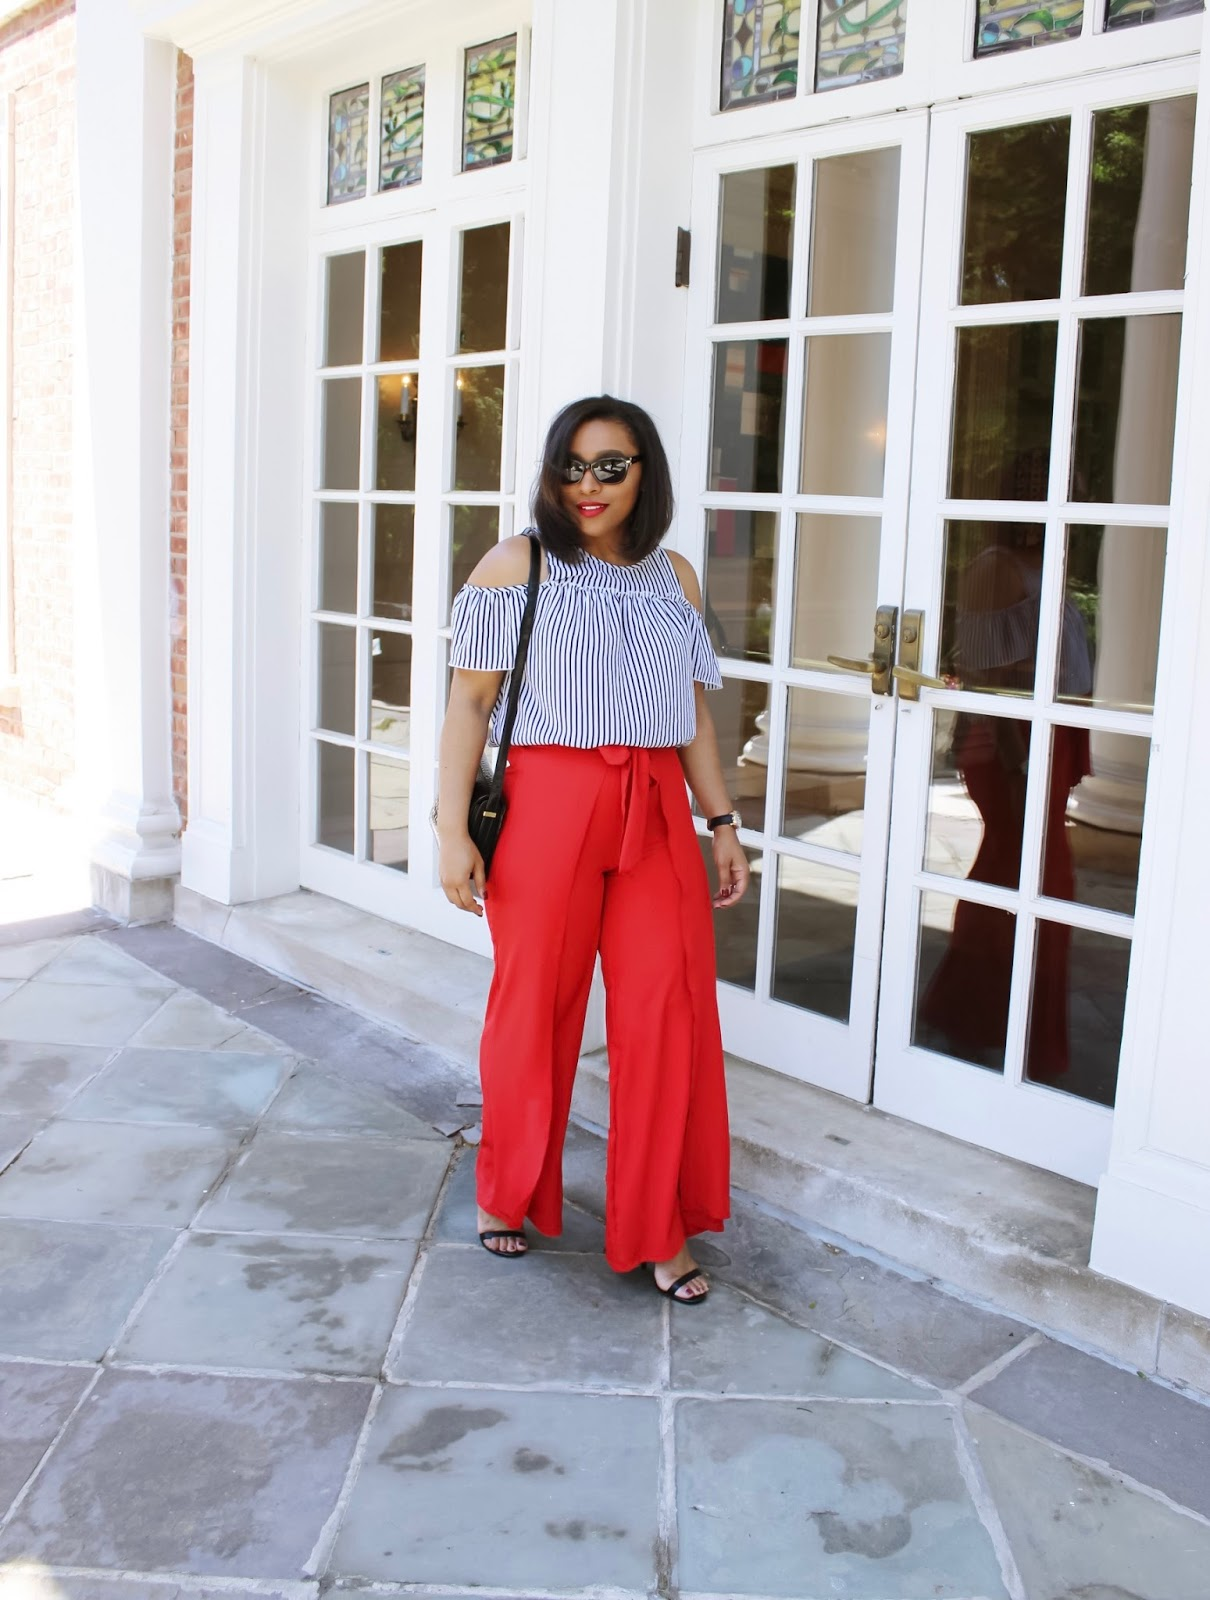 Top ideas for red pants - Chiffon Wrap Palazzo Pants Red Pants Off The Shoulder Summer Looks Cold